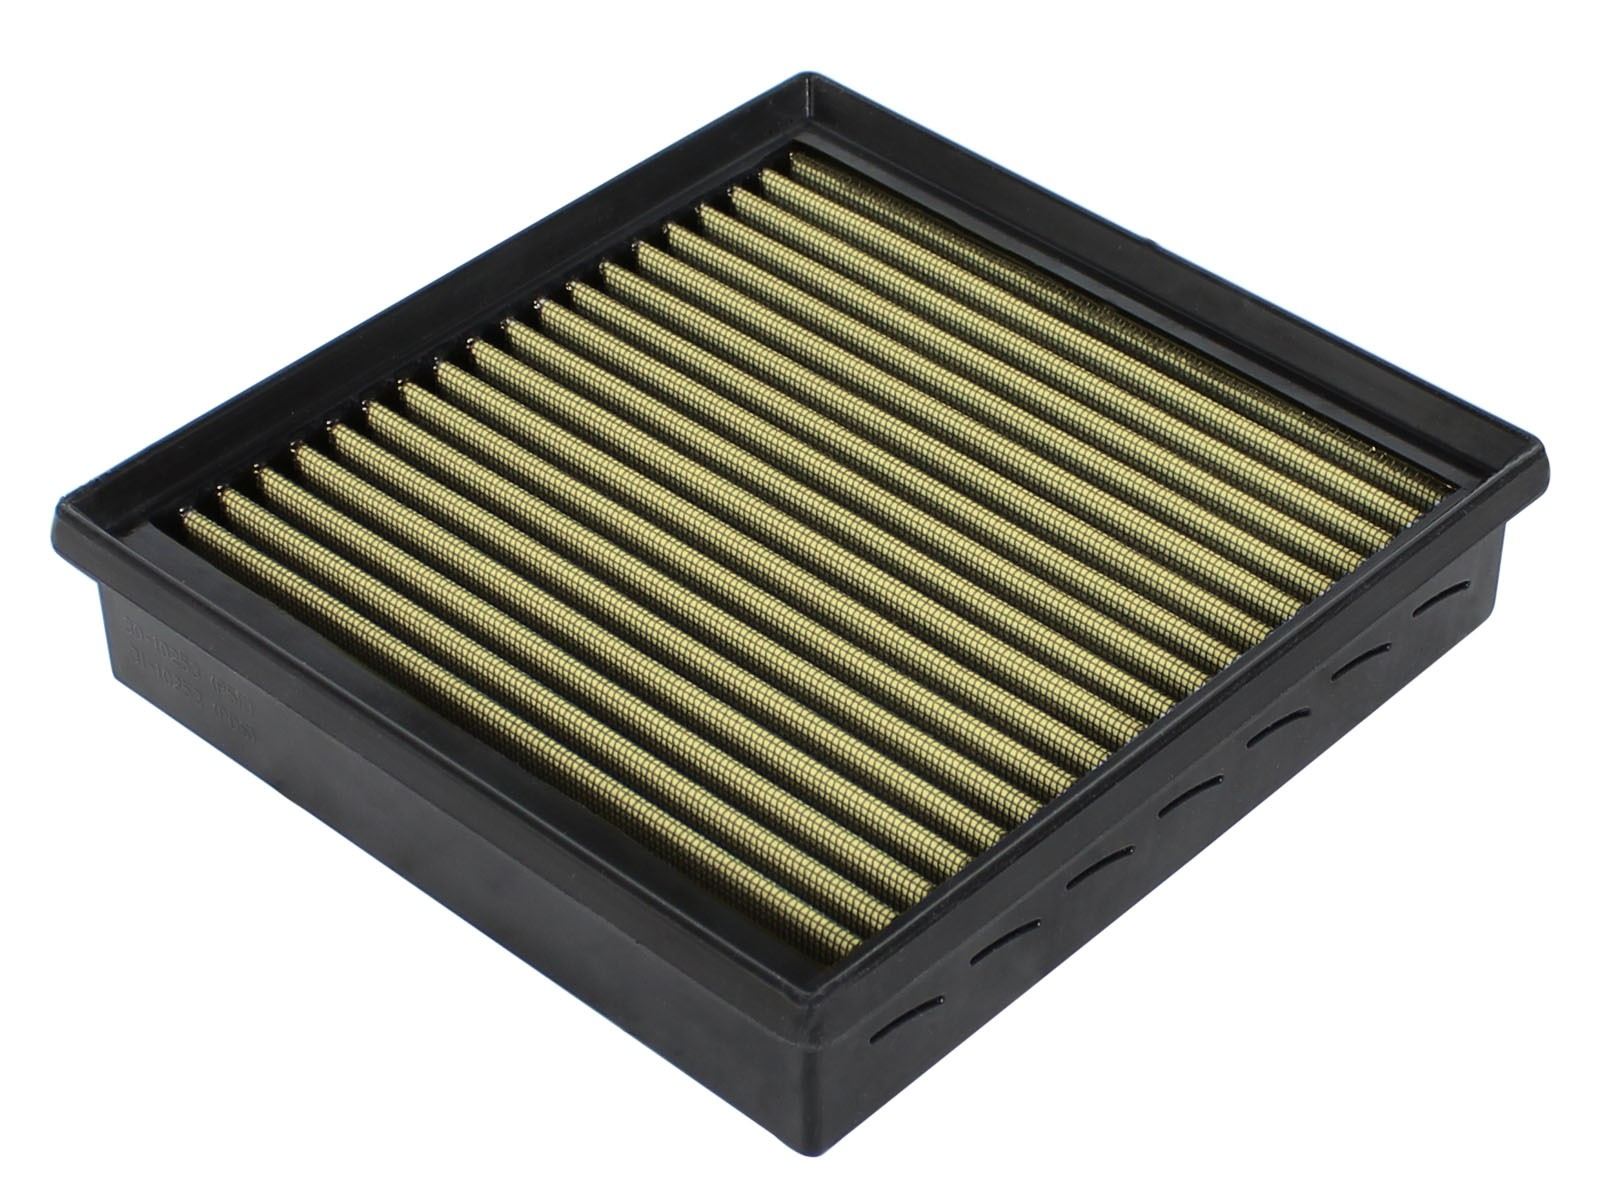 aFe POWER 73-10253 Magnum FLOW Pro GUARD7 Air Filter